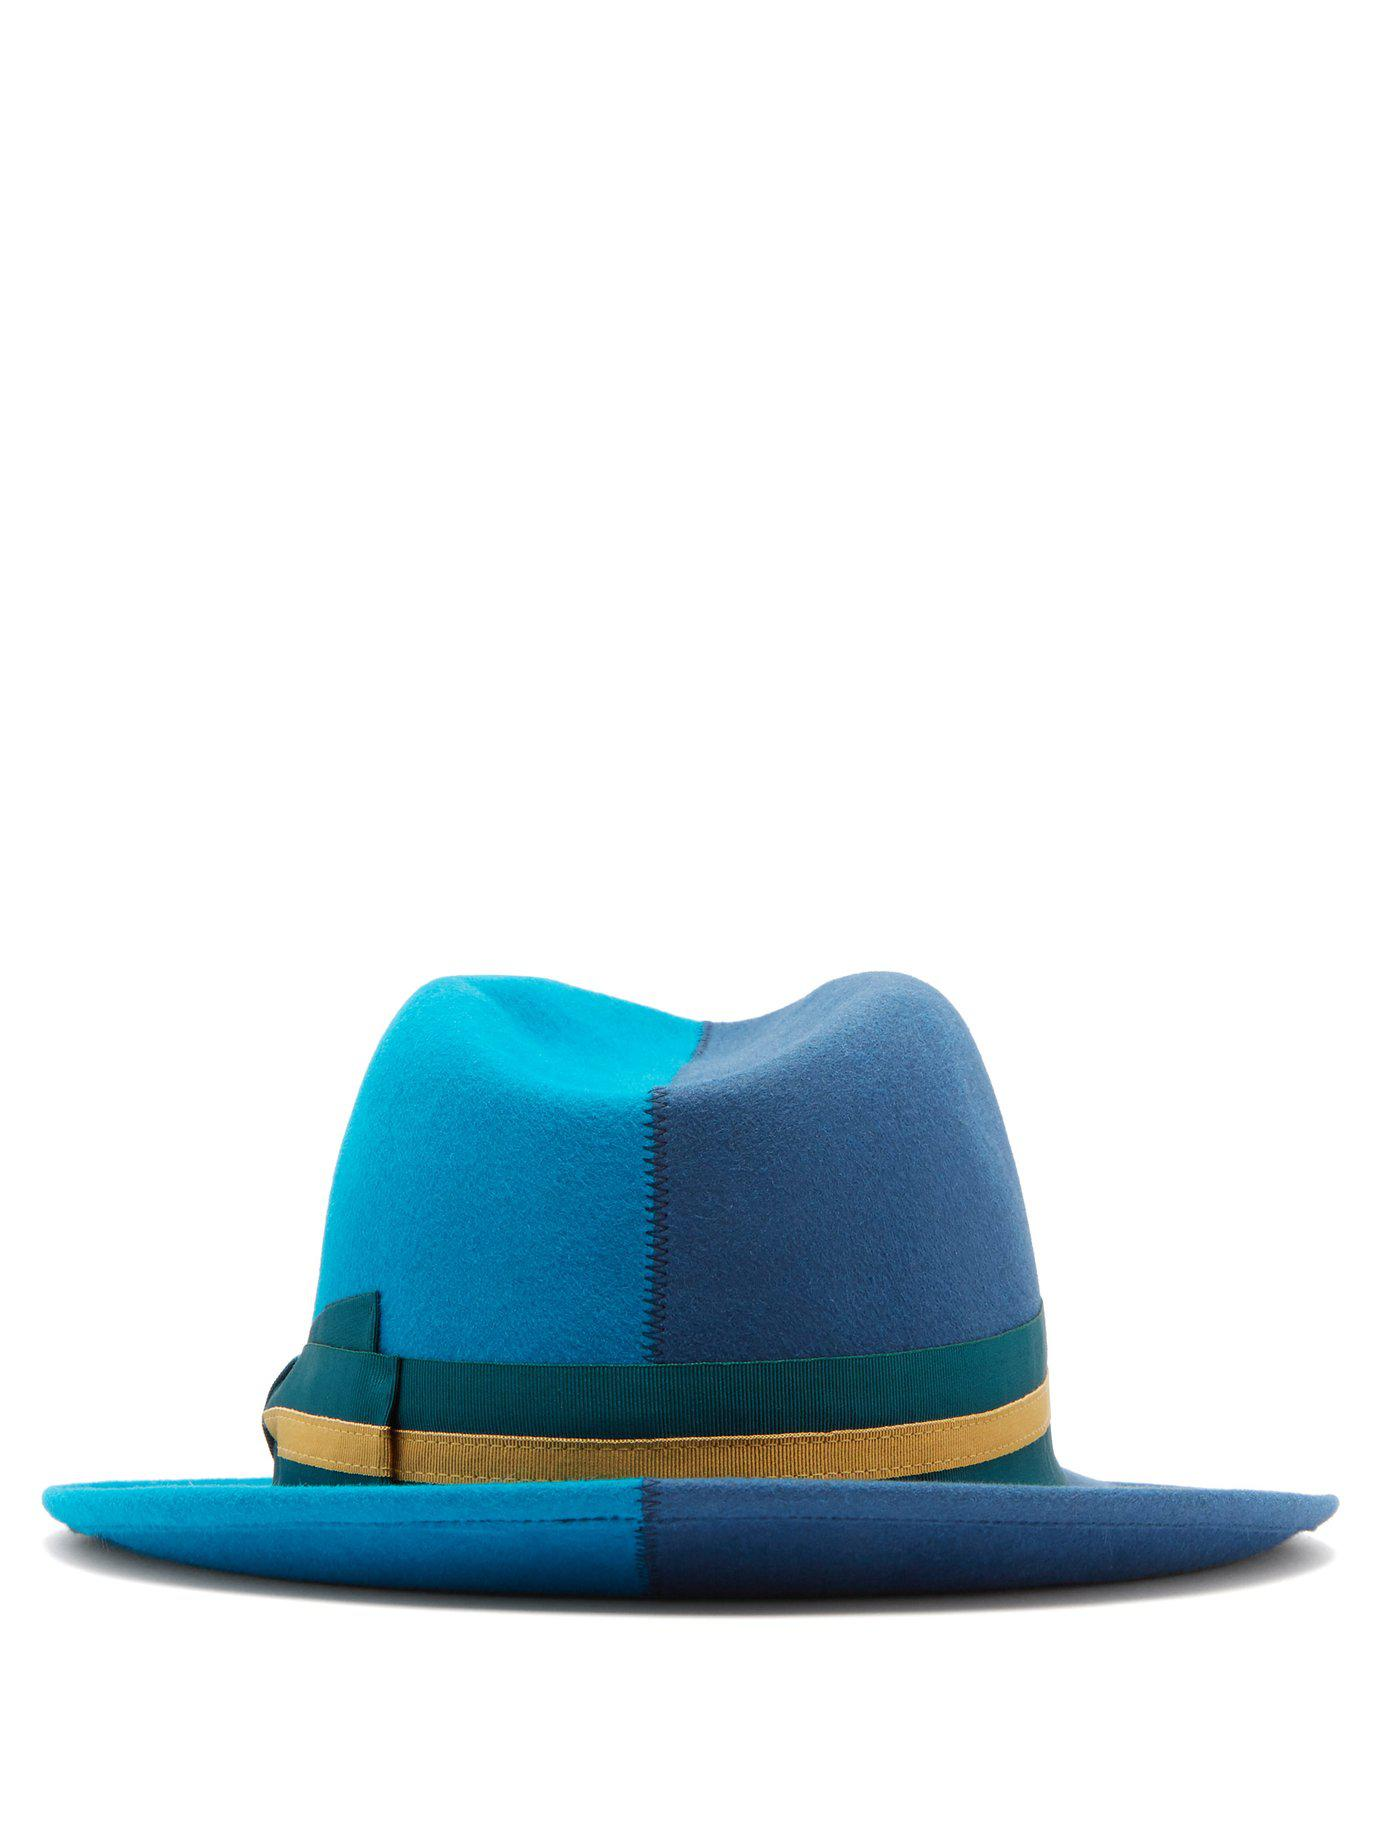 Borsalino fur felt blue striped band that